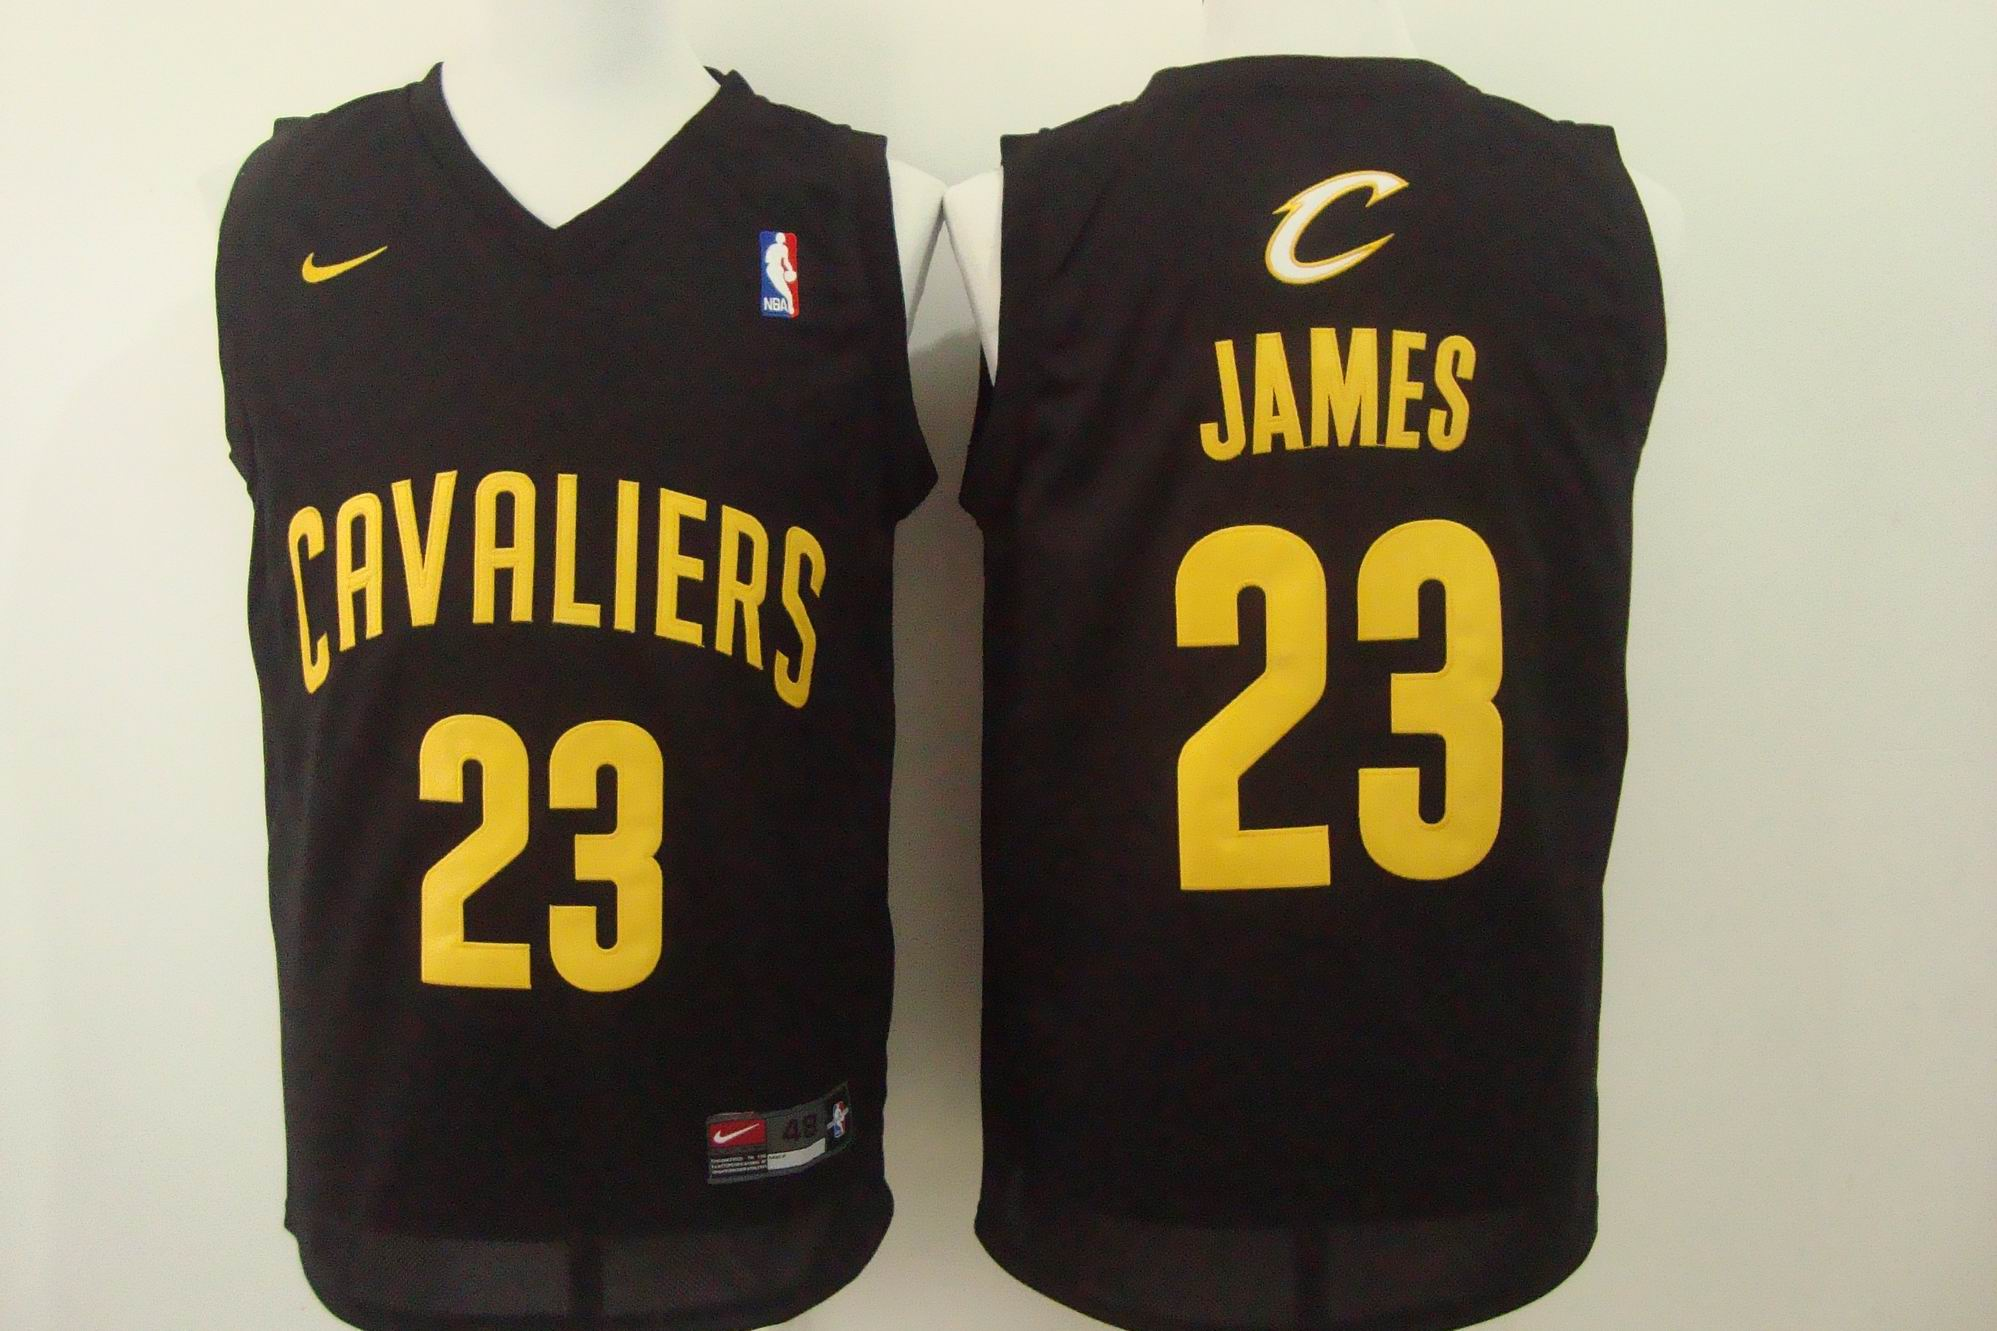 Men's Nike Cleveland Cavaliers #23 LeBron James Black with Gold Stitched NBA Jersey